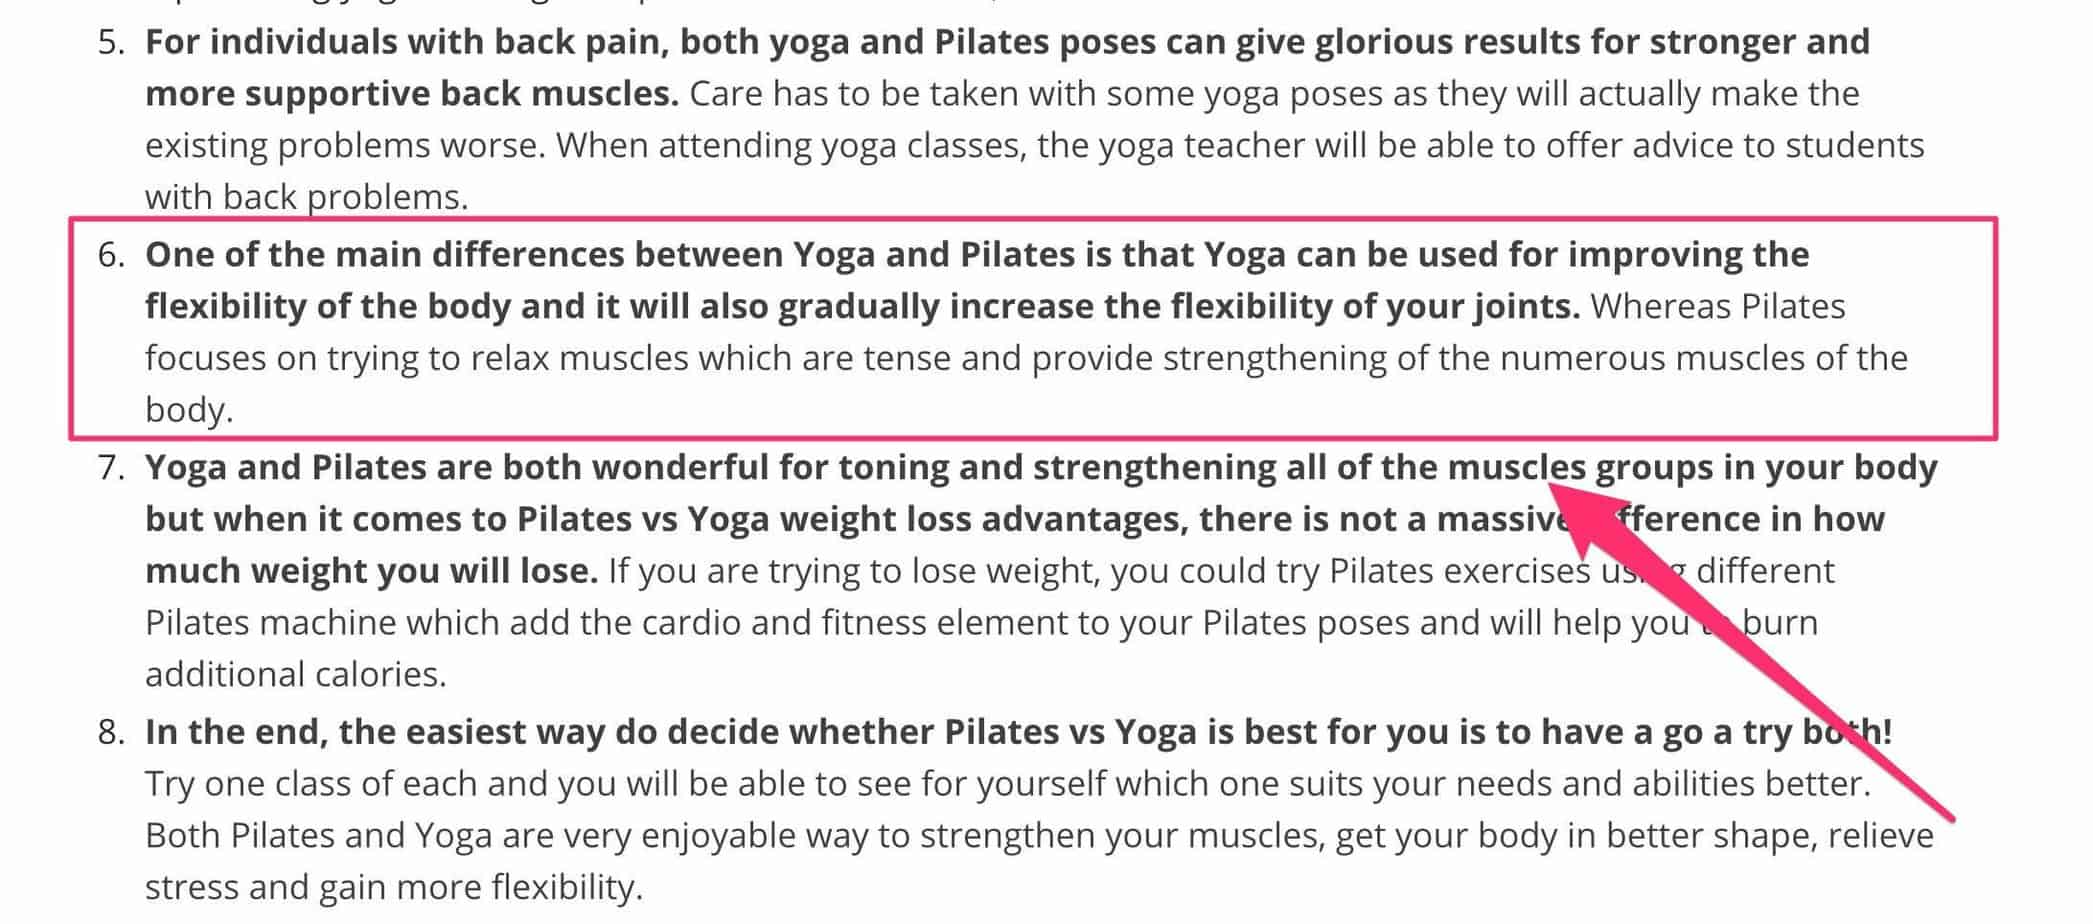 pilates vs yoa - analysis